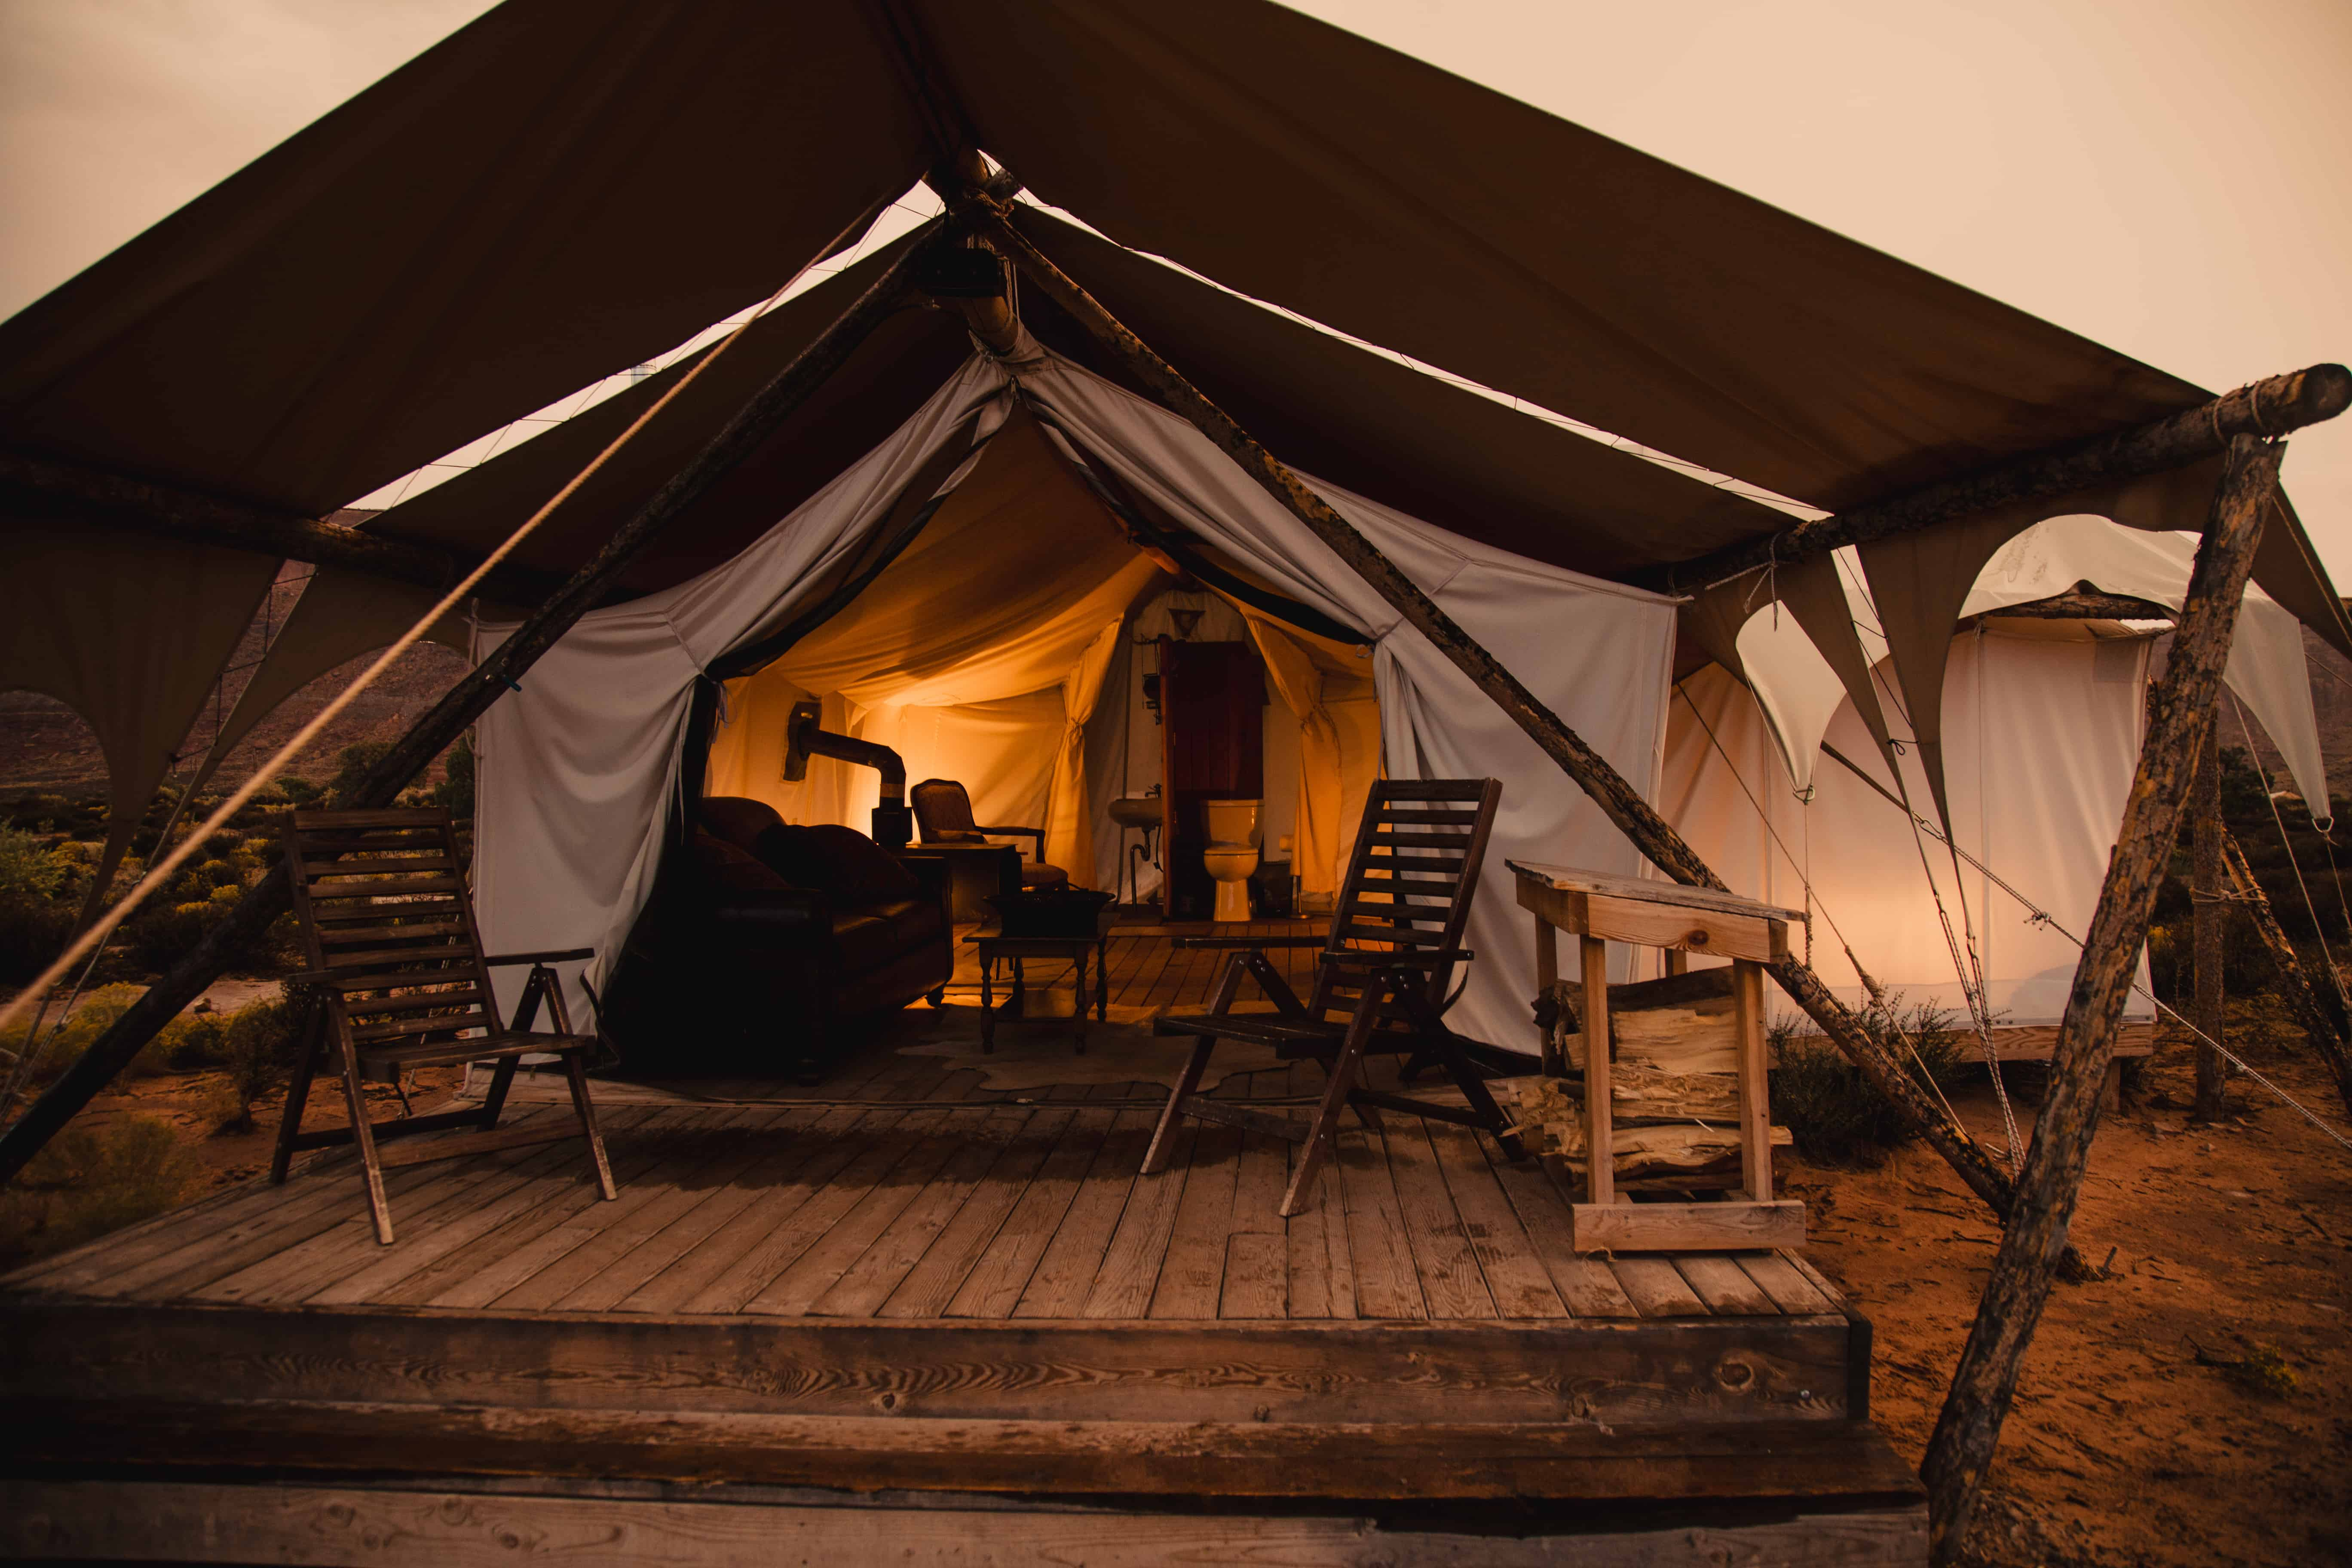 a luxury tent in the desert